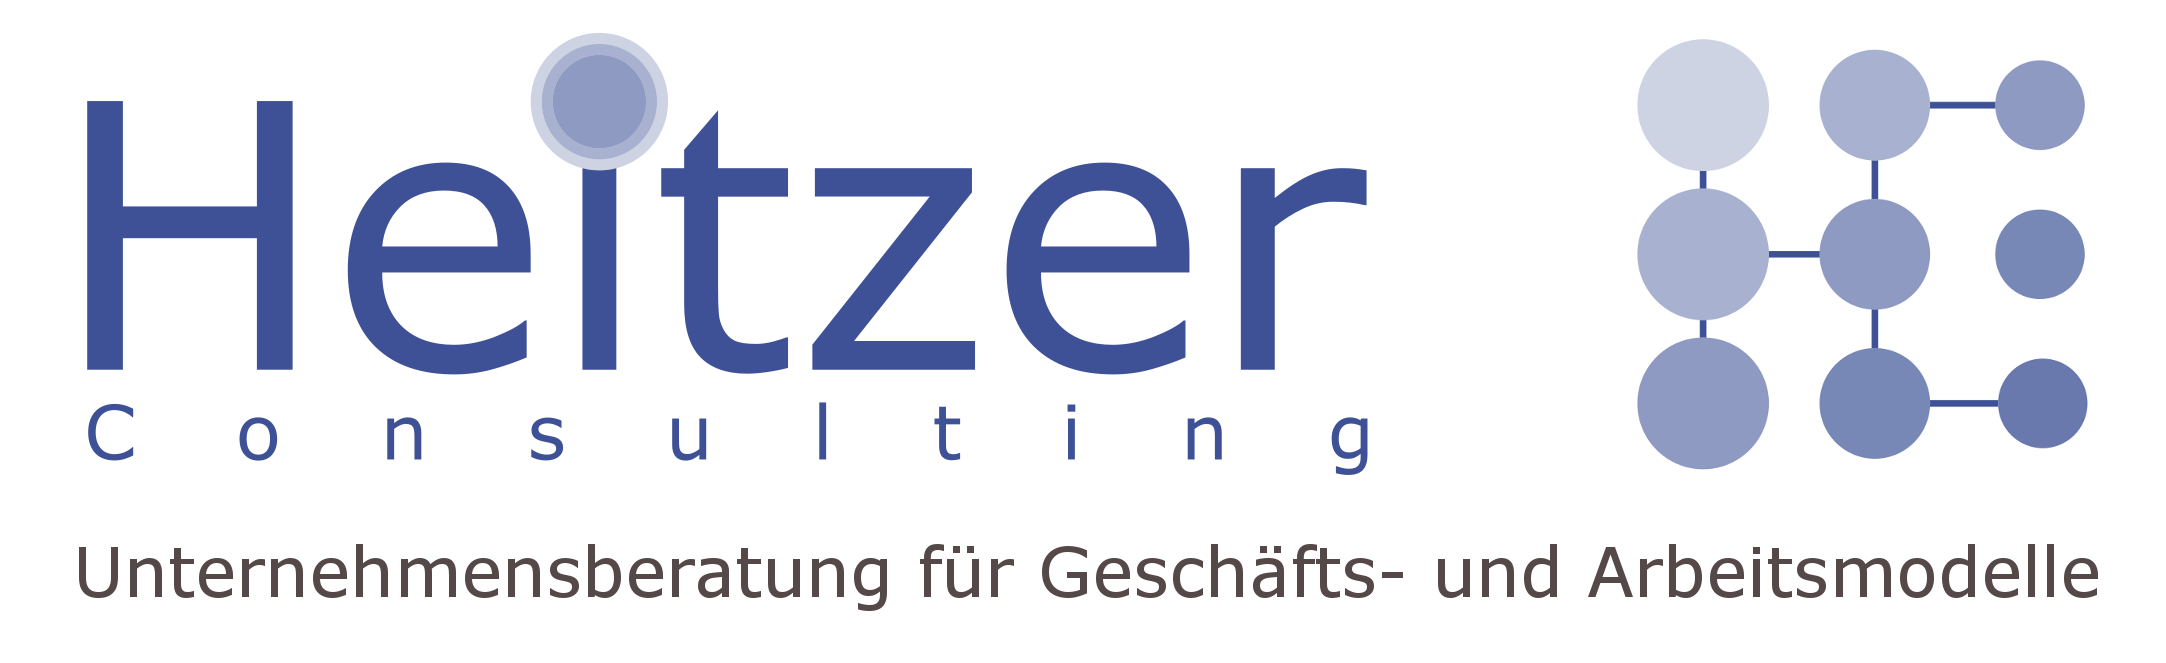 Heitzer Consulting